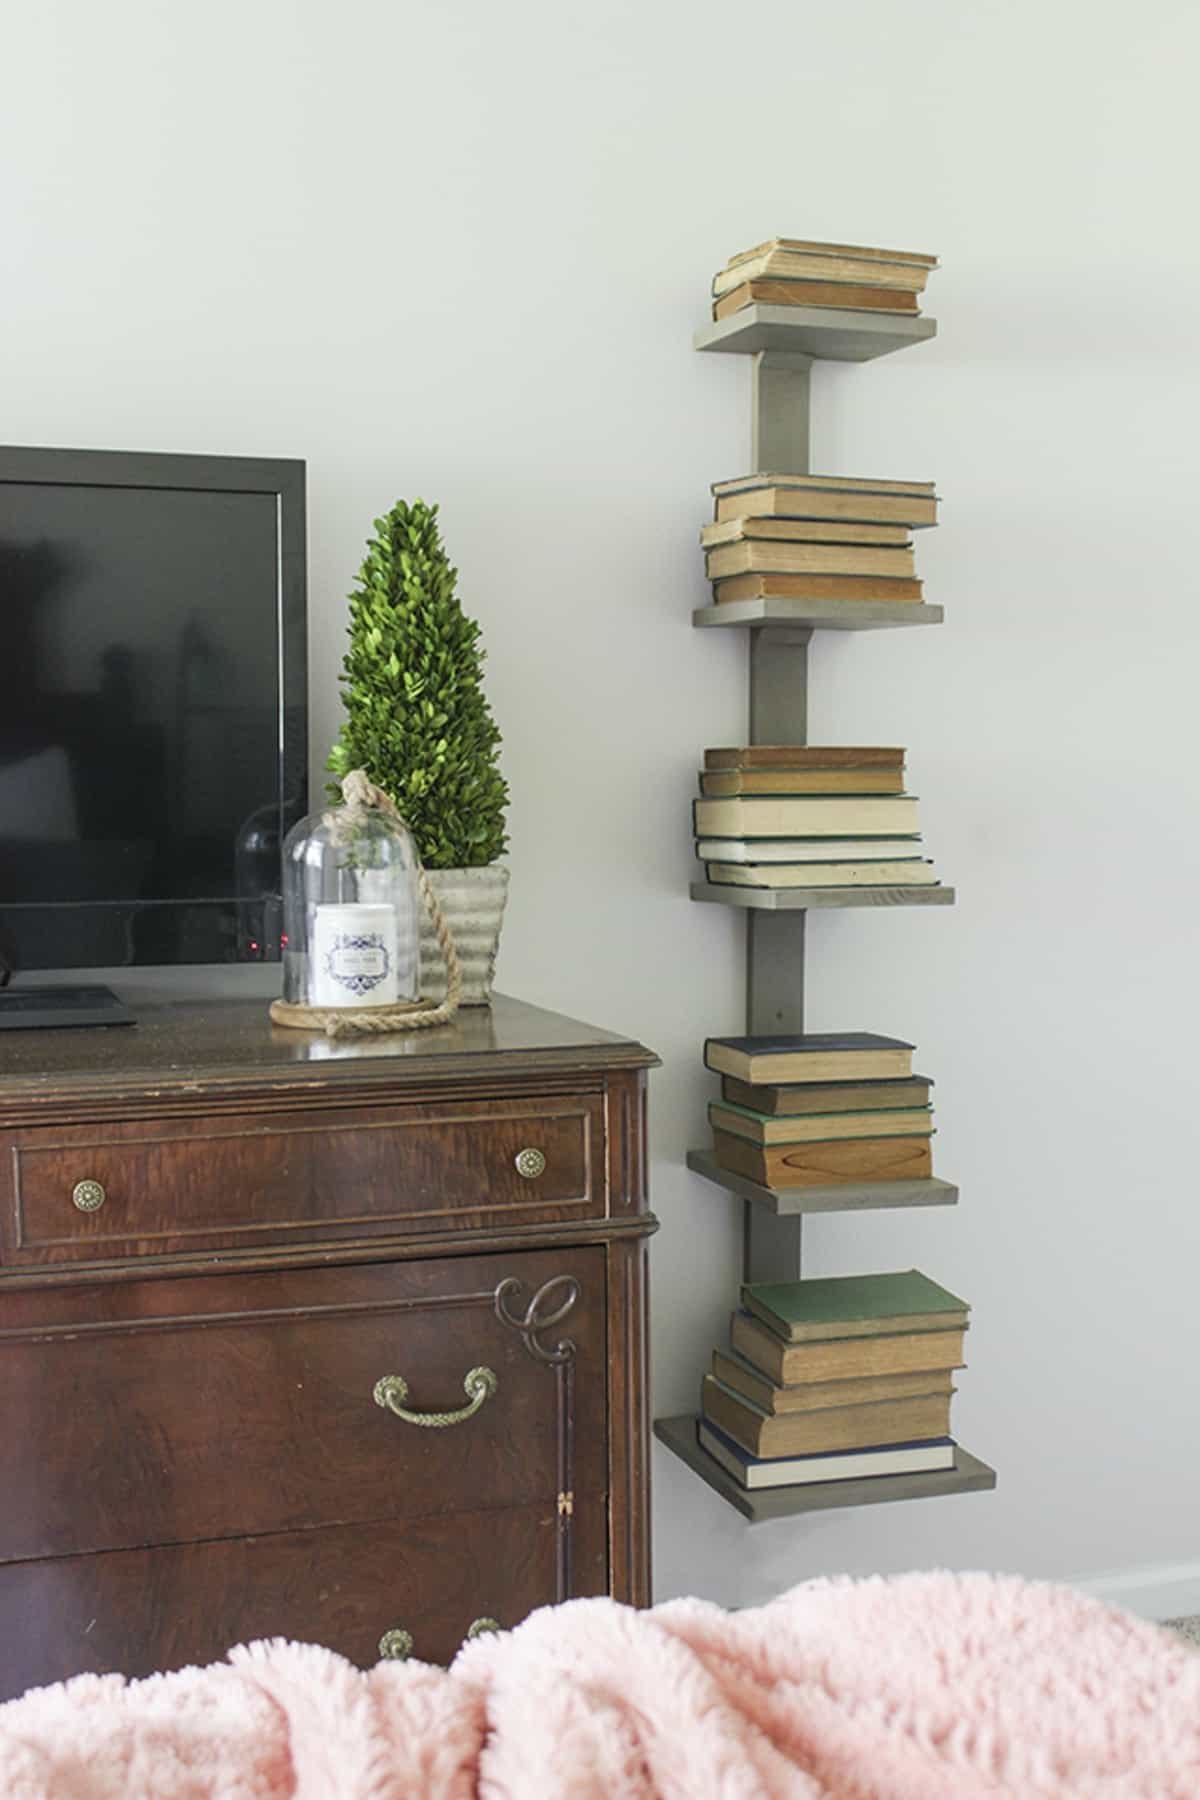 Pedestal Bookshelf with Spine